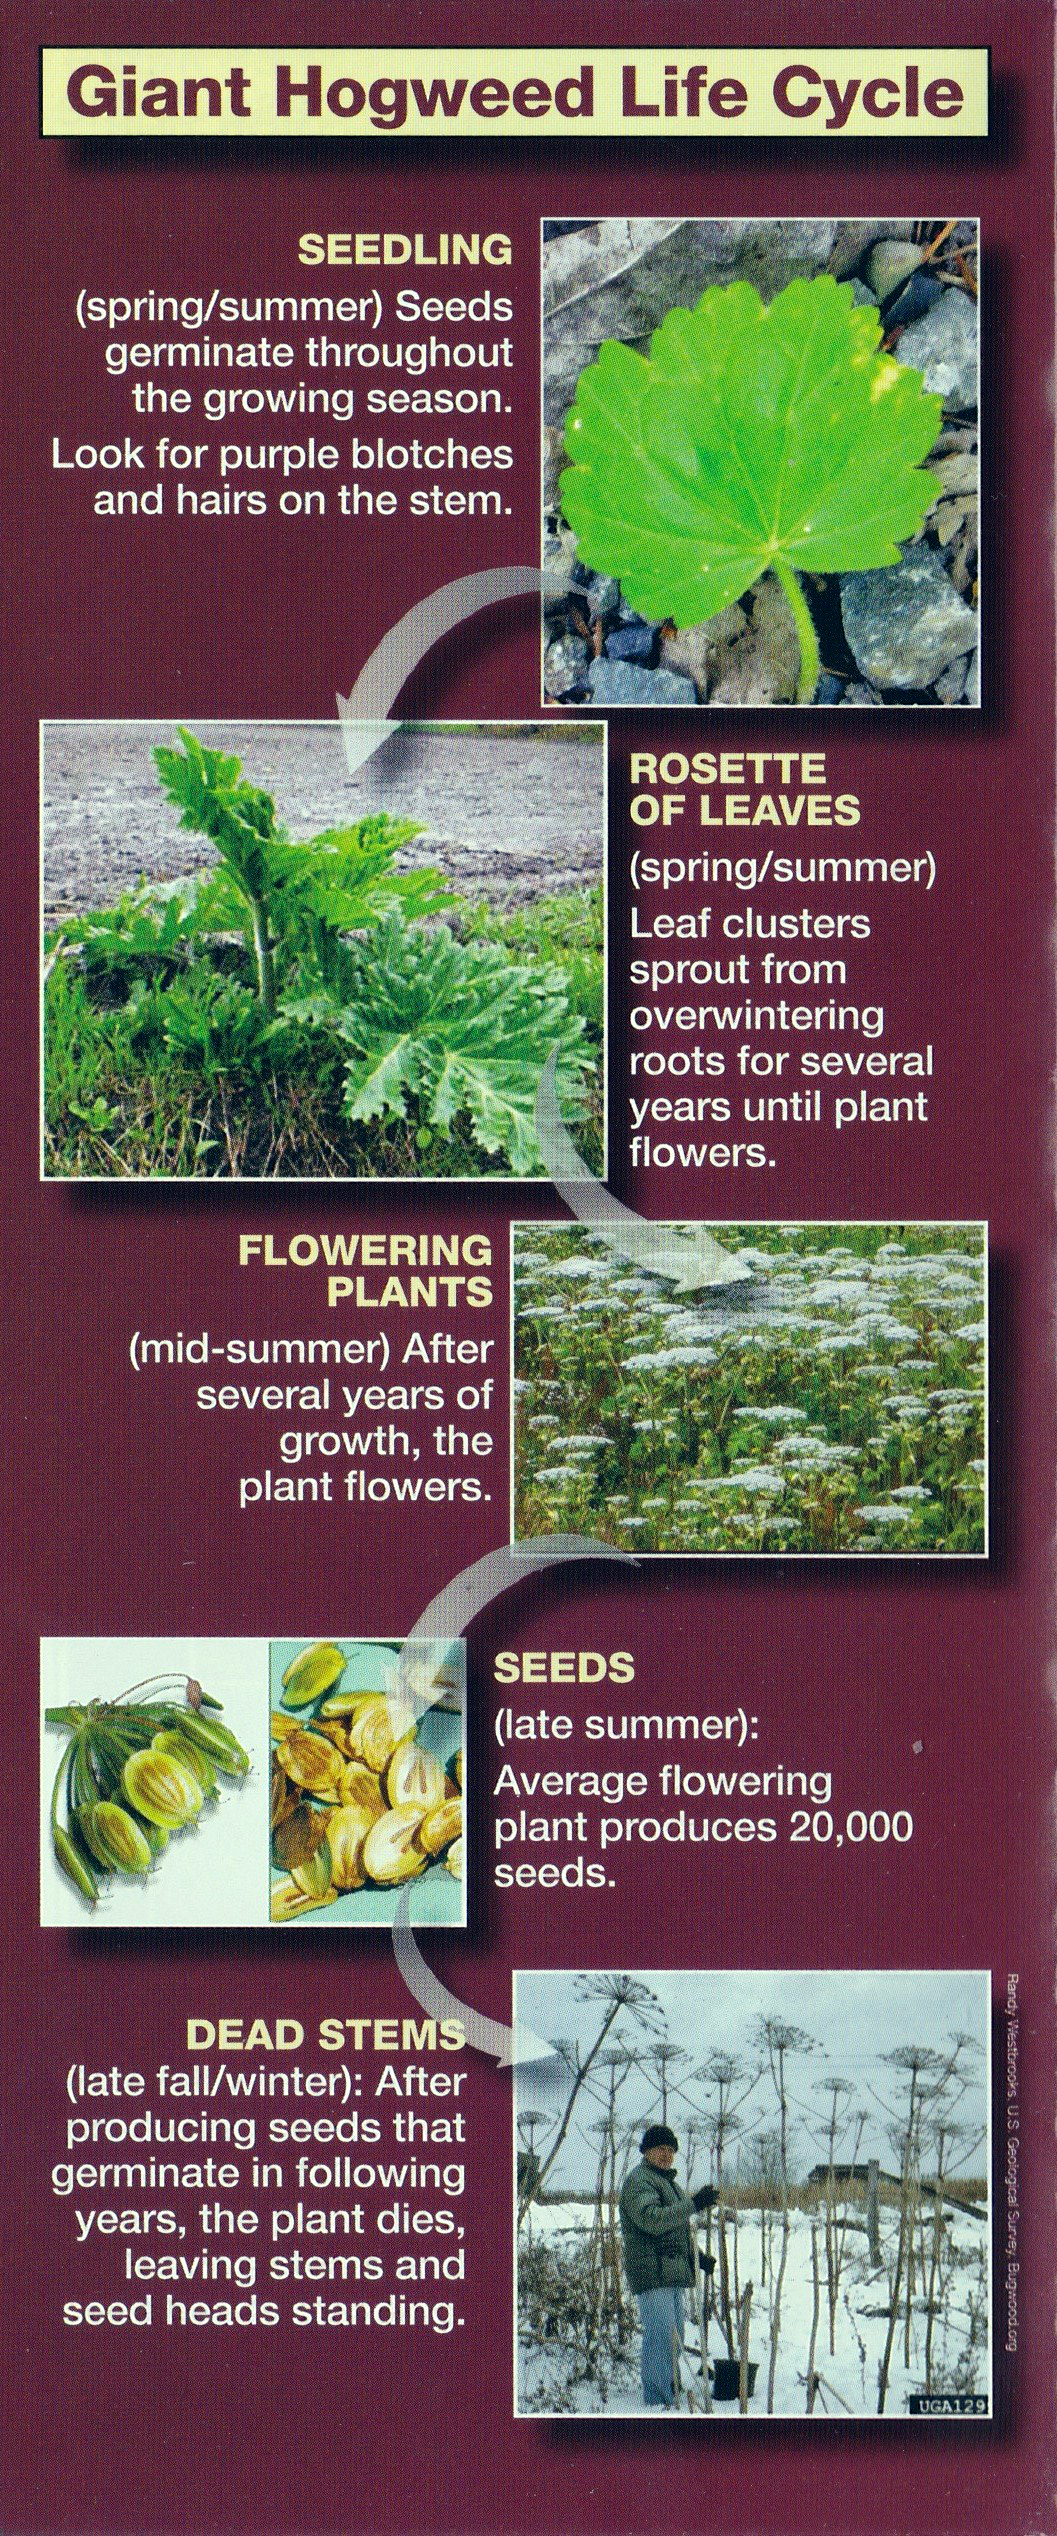 Life Cycle Of Giant Hogweed Credit Nydec Click To Enlarge